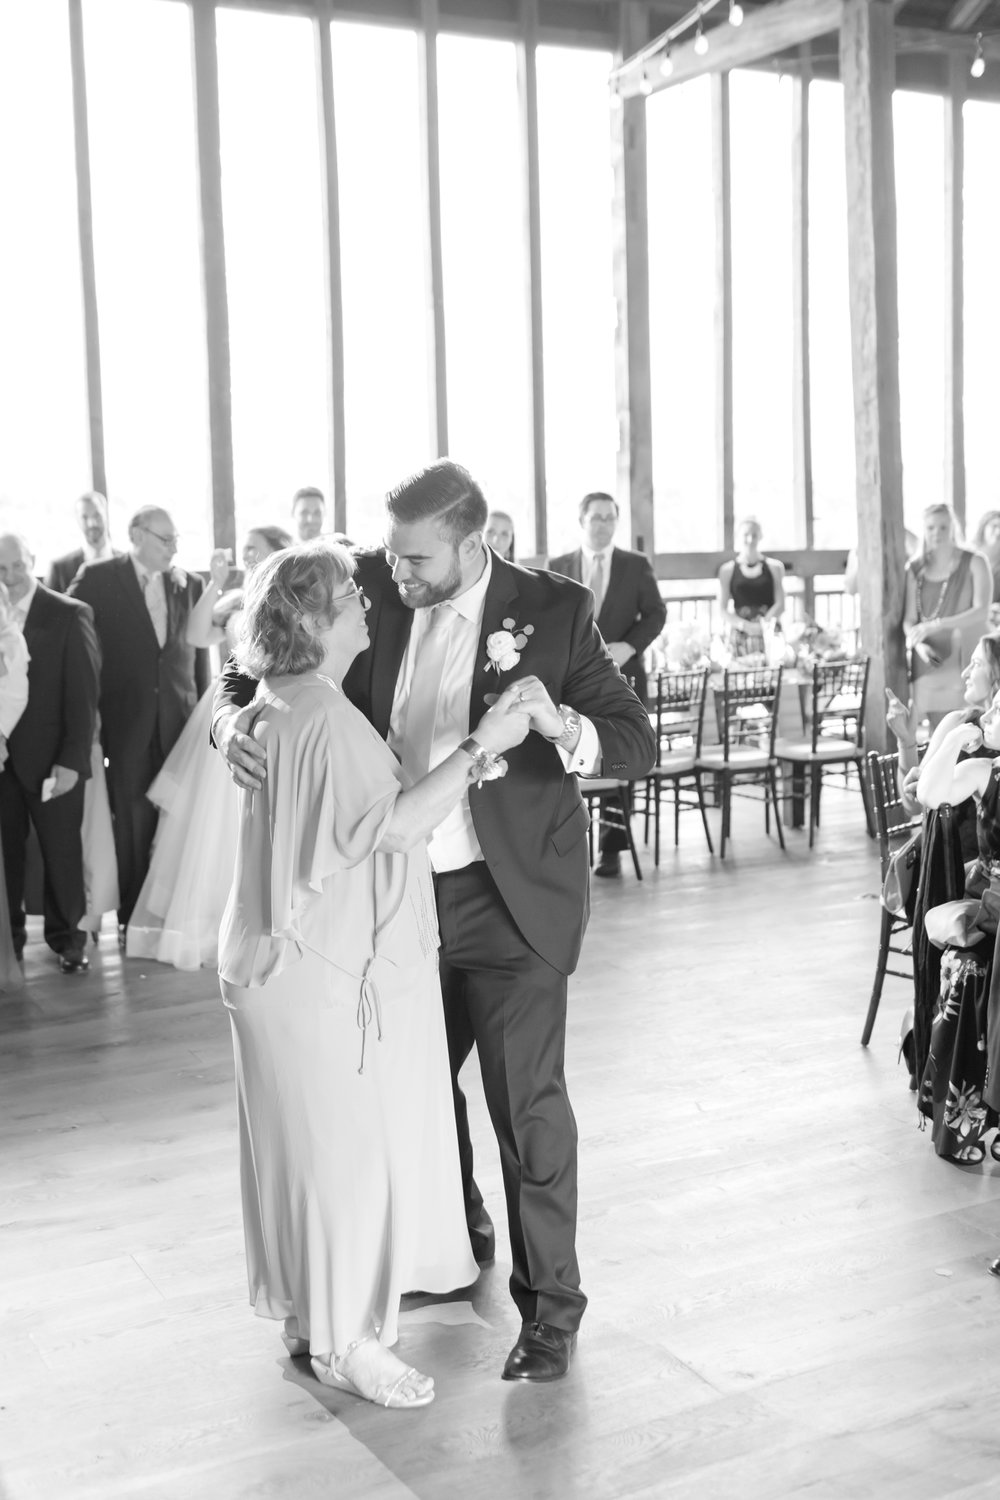 KARP WEDDING HIGHLIGHTS-413_anna grace photography dulanys overlook wedding baltimore maryland wedding photographer photo.jpg